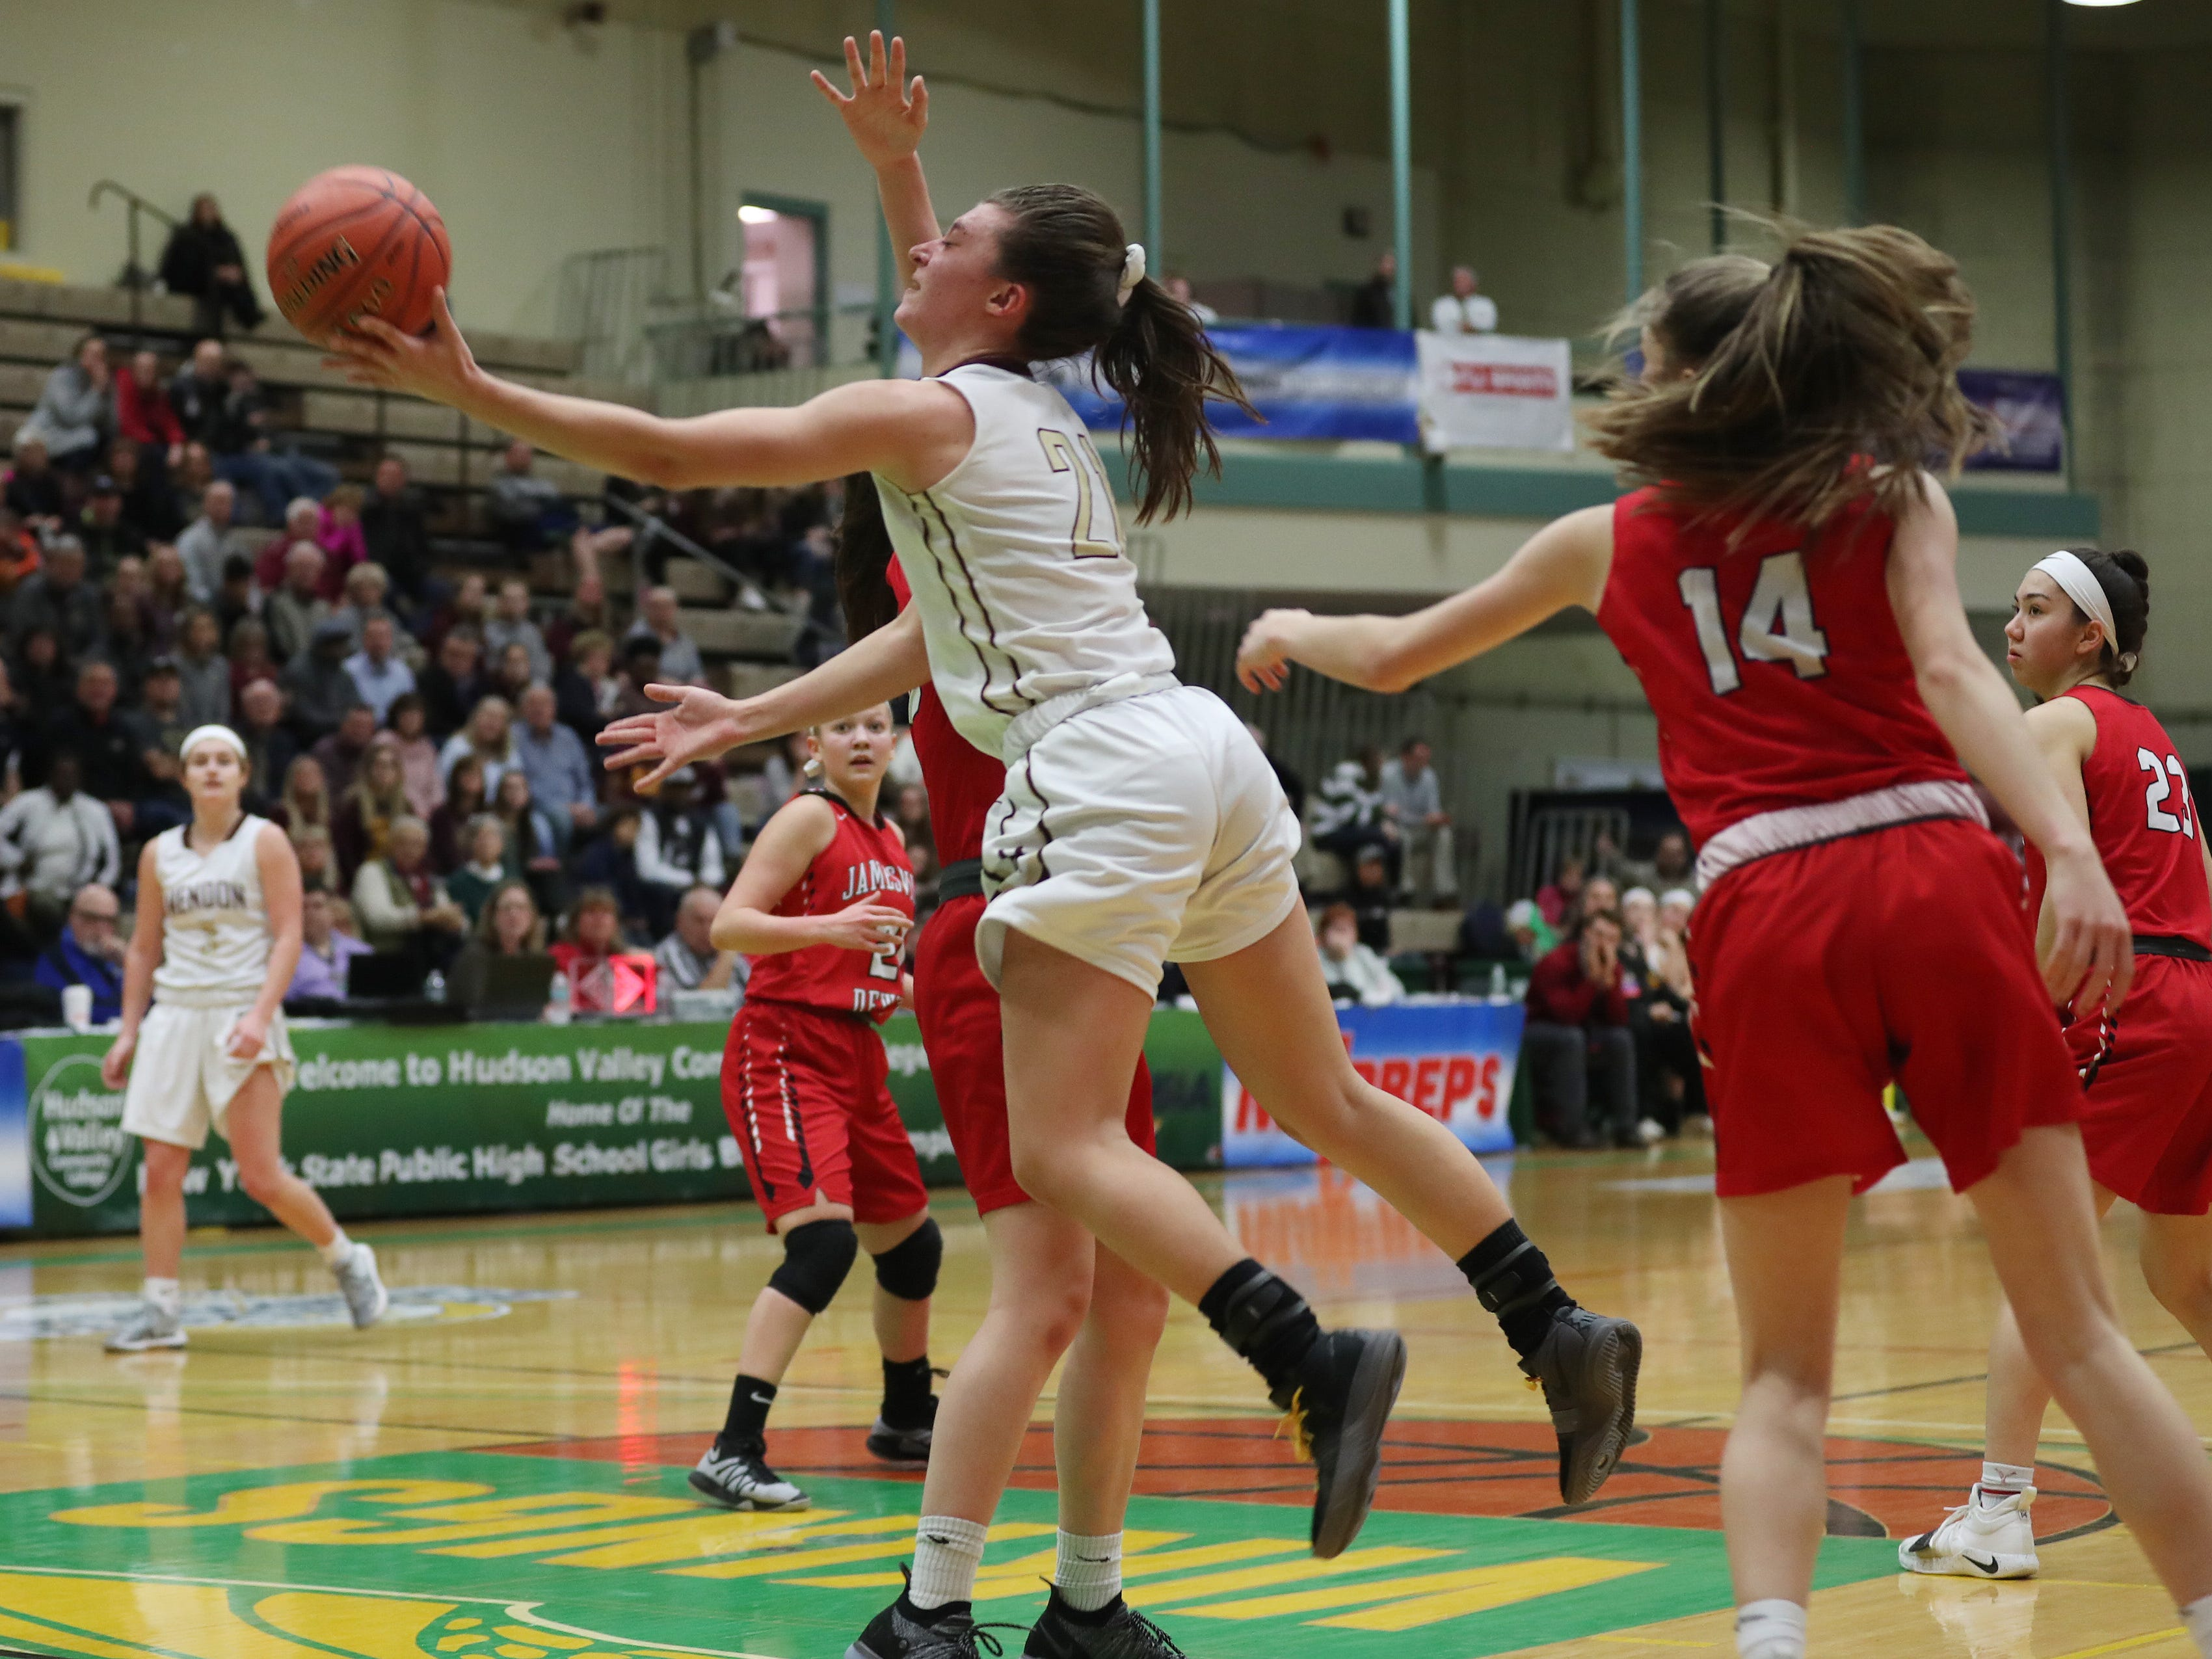 Pittsford Mendon's Alana Fursman (21) drives to the basket against Jamesville-DeWitt during the girls Class A state semifinal at Hudson Valley Community College in Troy March 16, 2019.